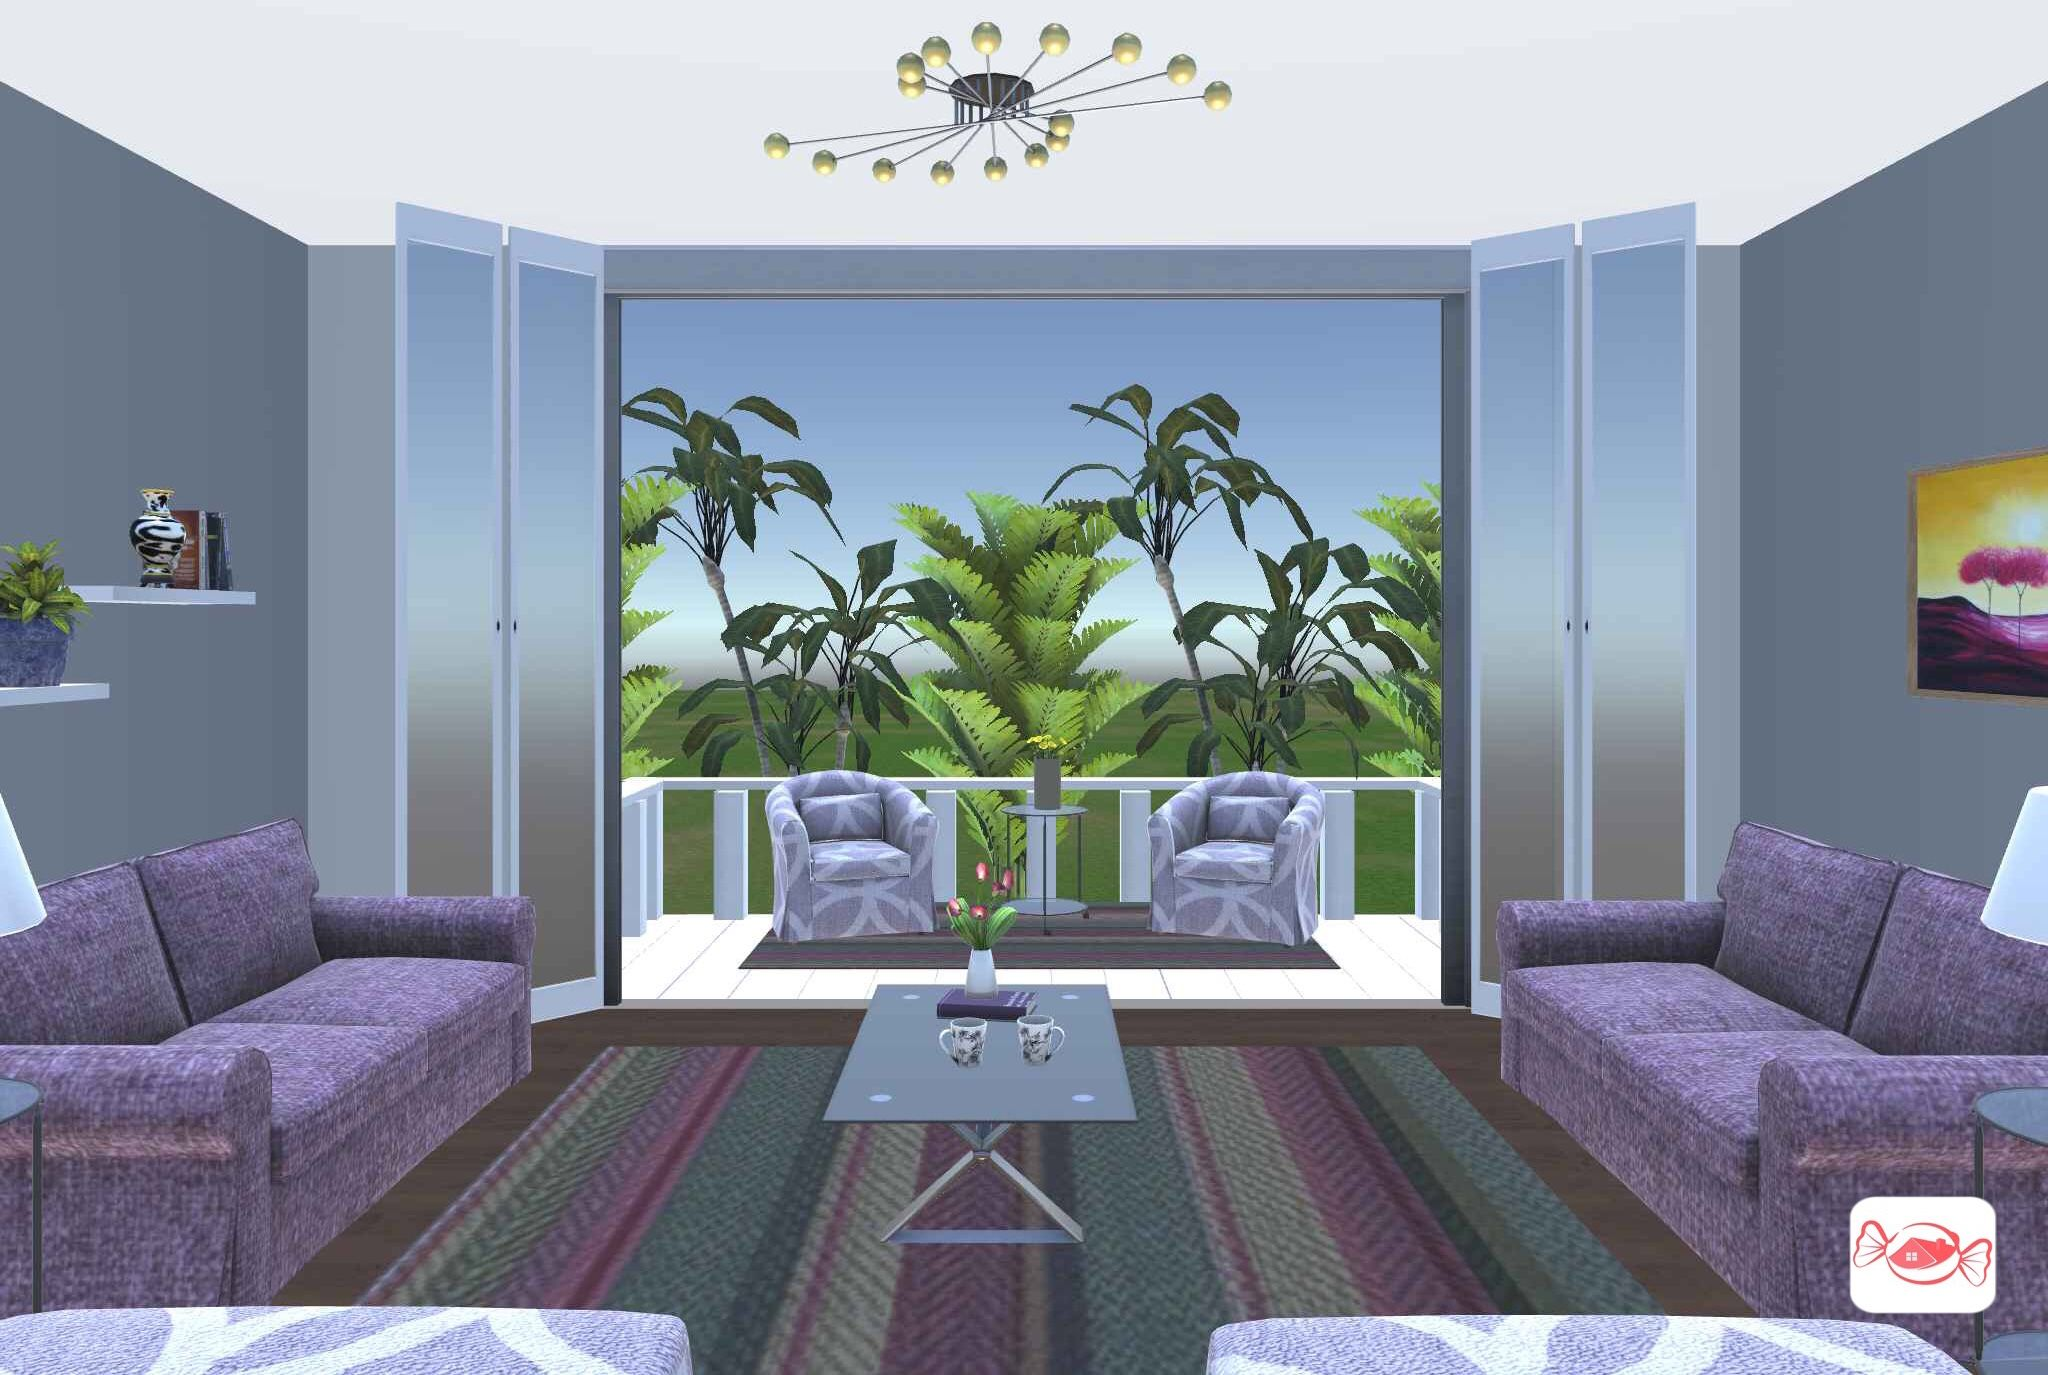 Indoor outdoor room created with home sweet home 3d app